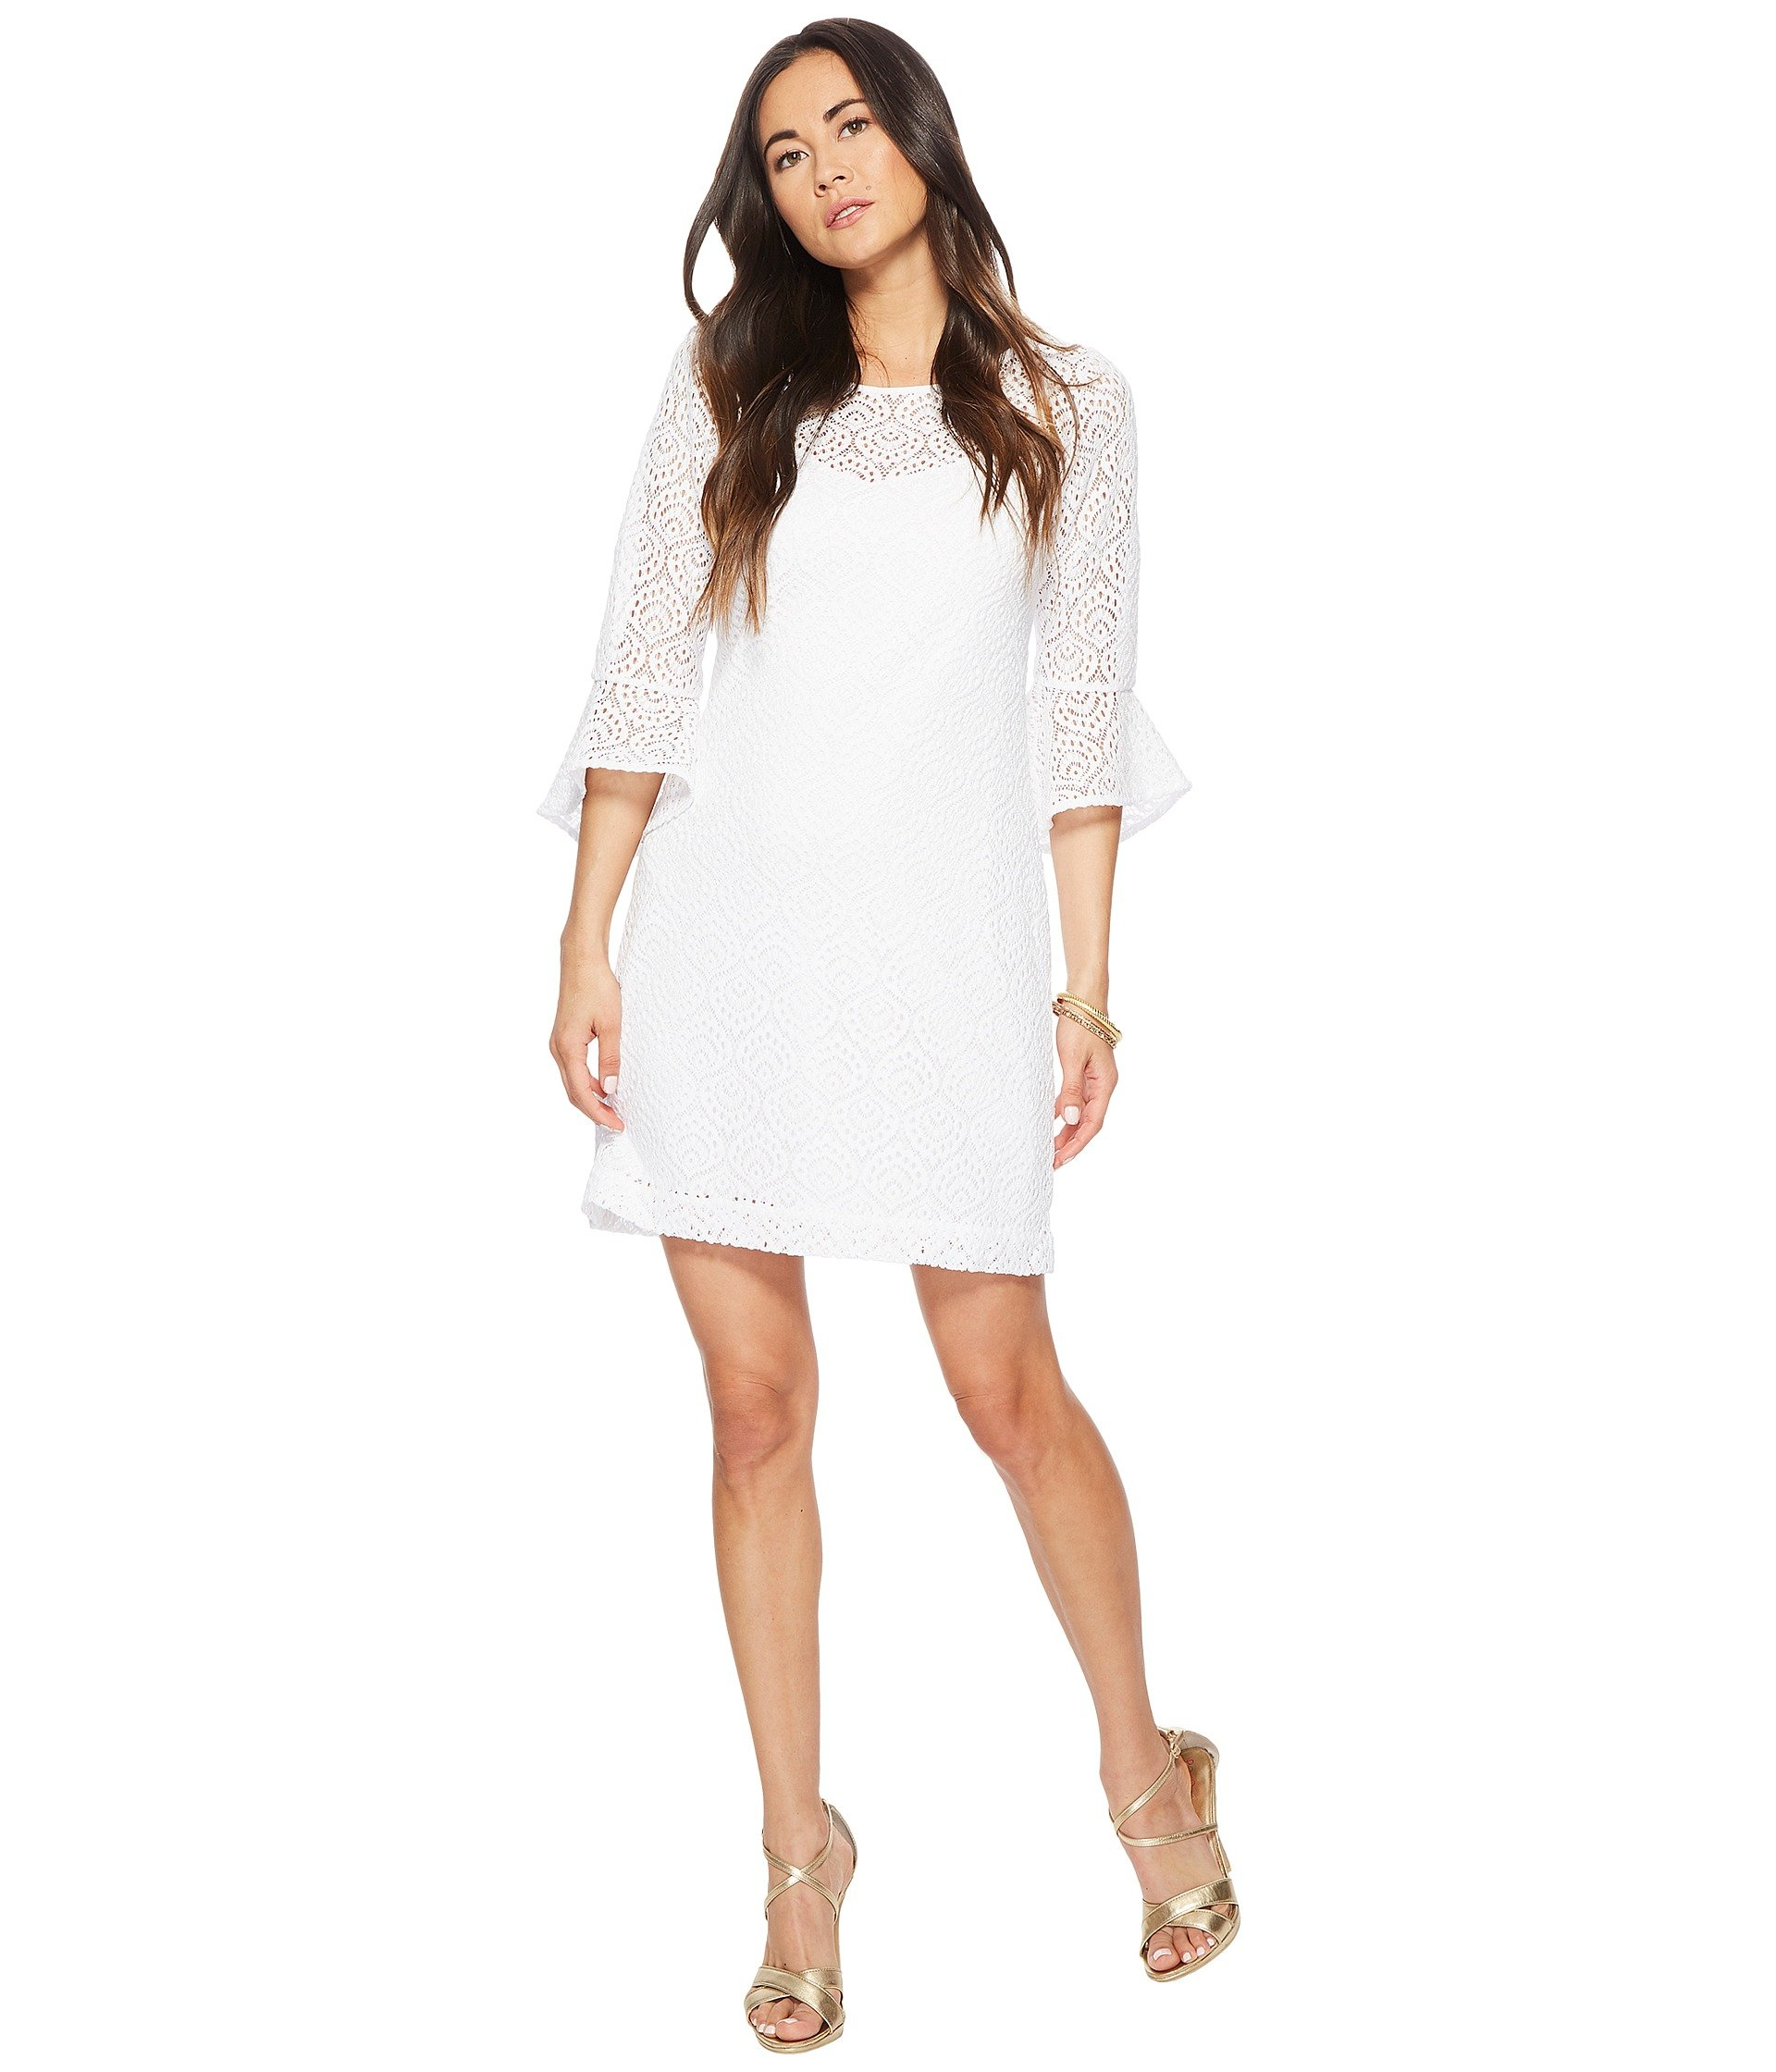 Dresses, White, Women | Shipped Free at Zappos